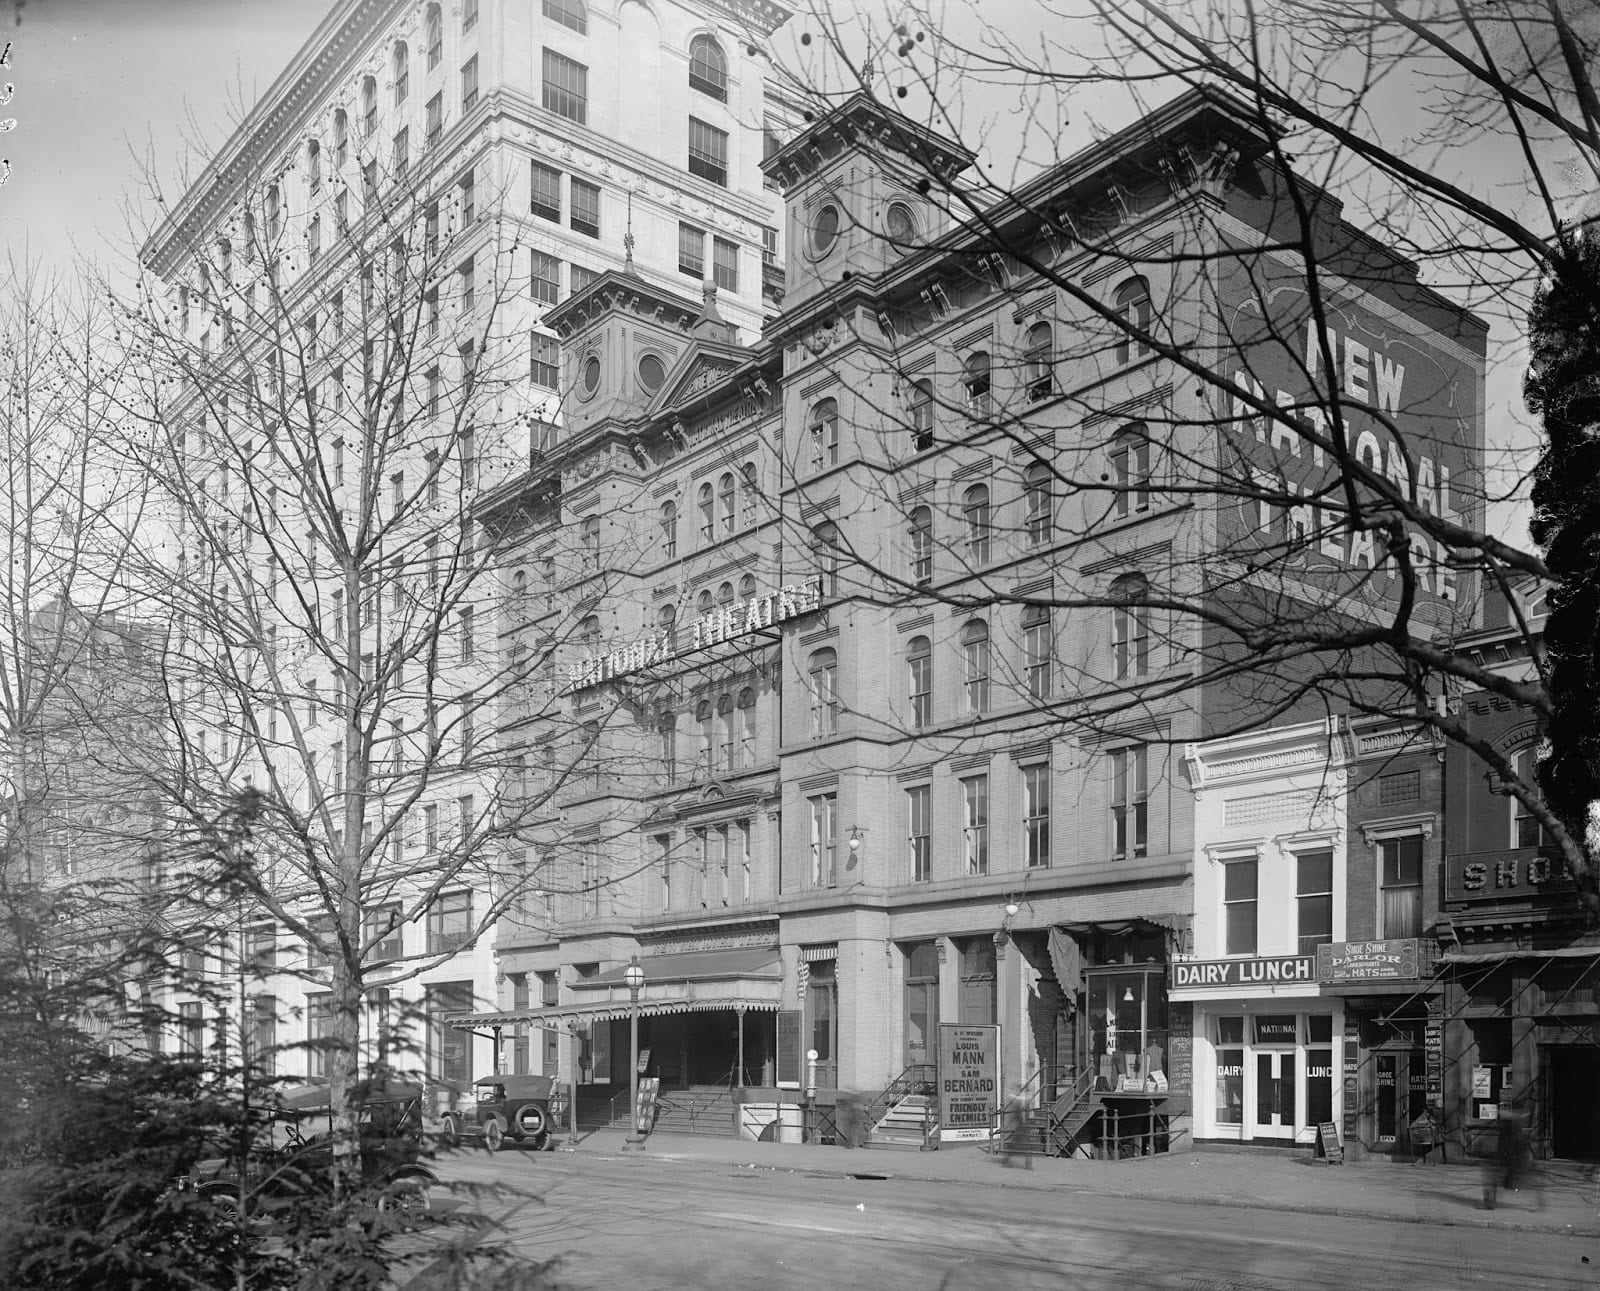 The 1885 National Theatre building is seen in this photograph from about 1918